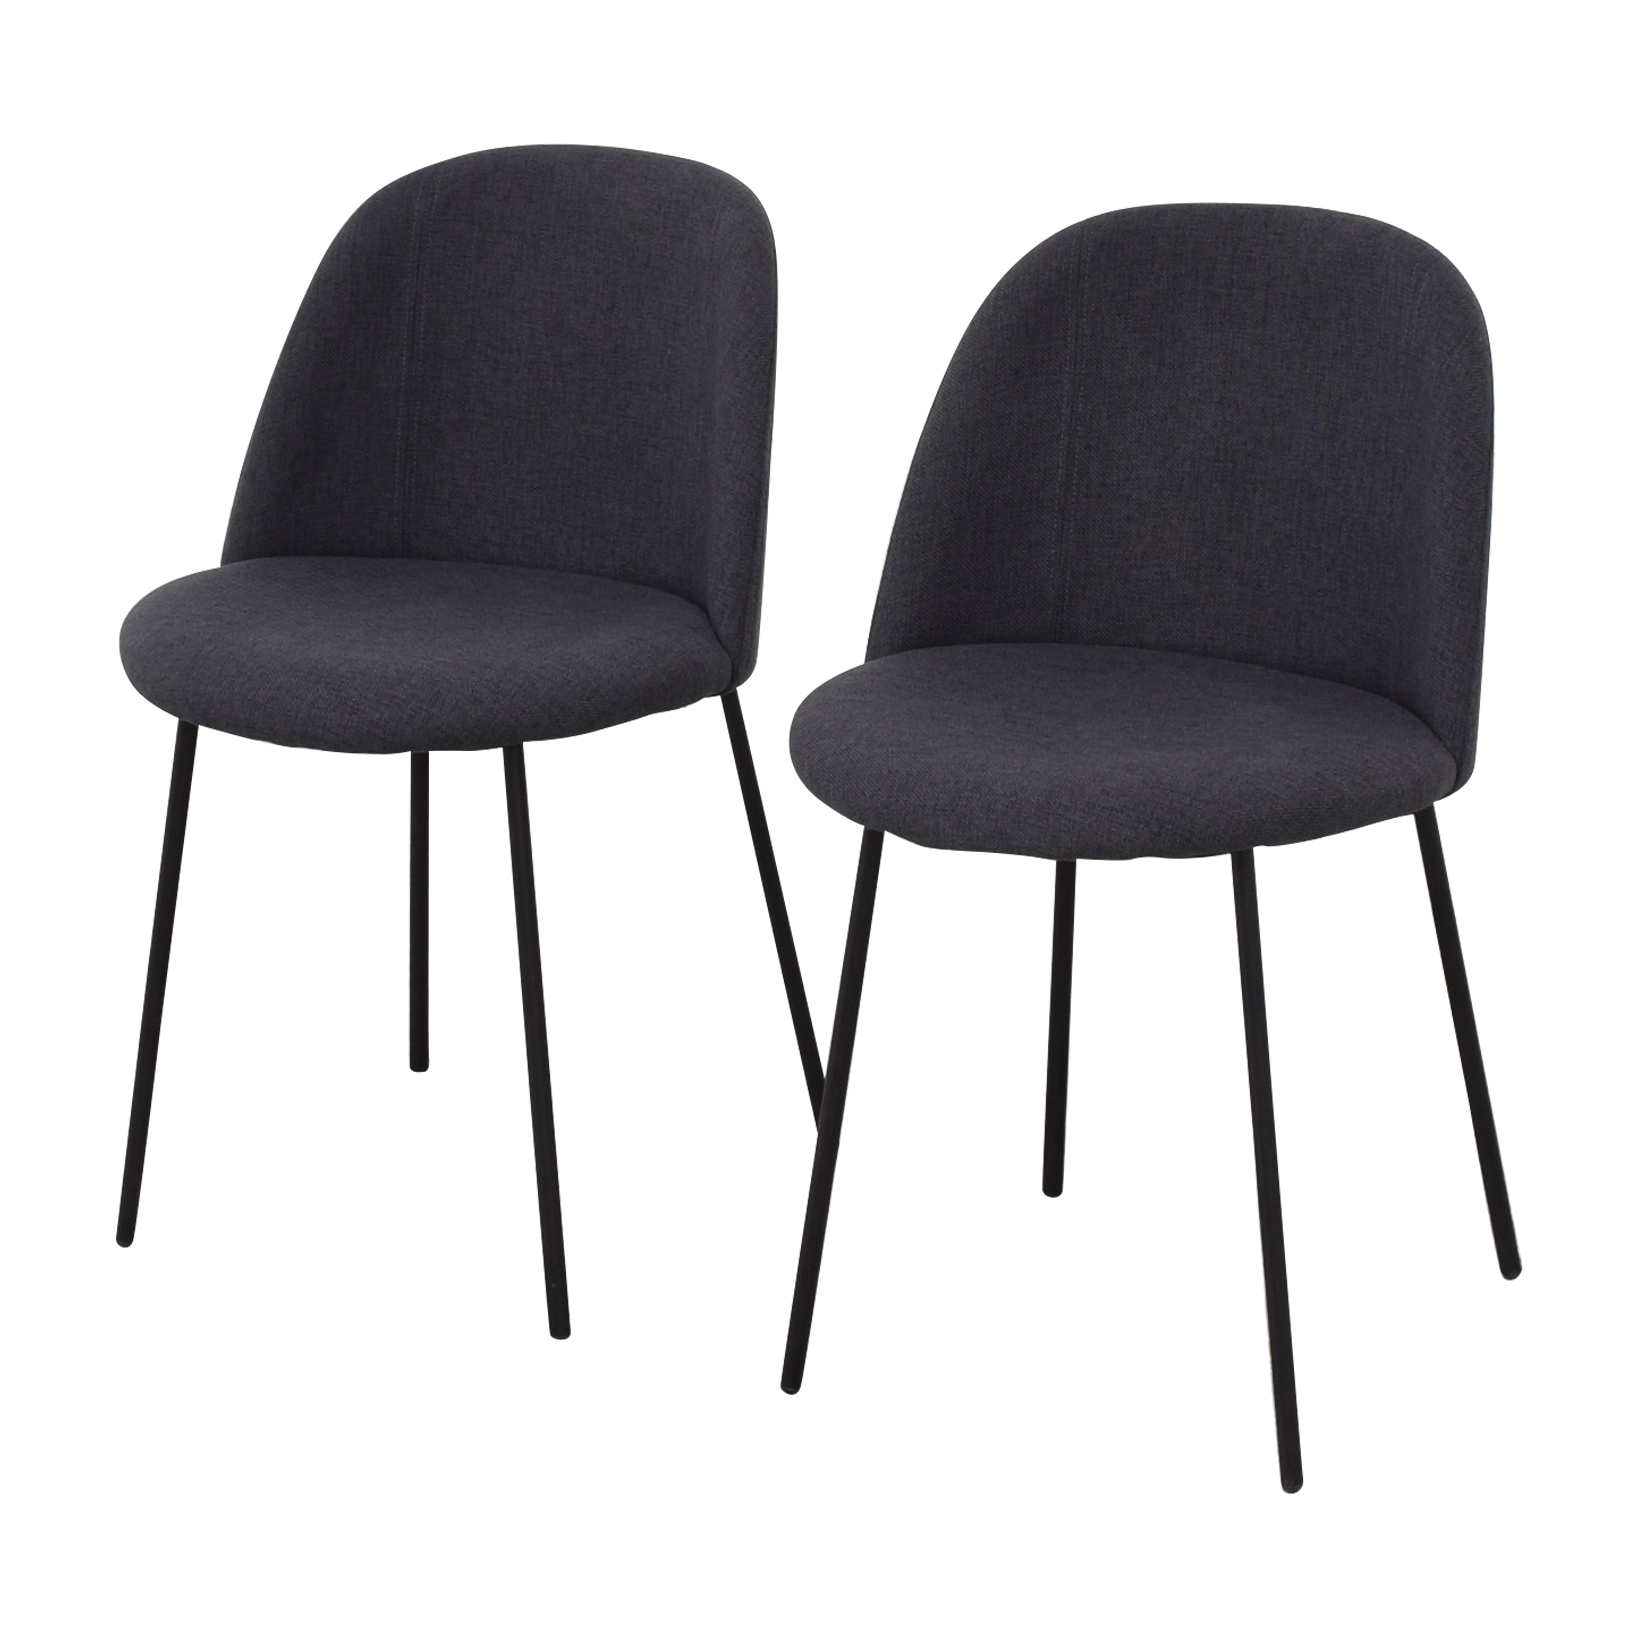 shop Article Ceres Dining Chairs Article Dining Chairs